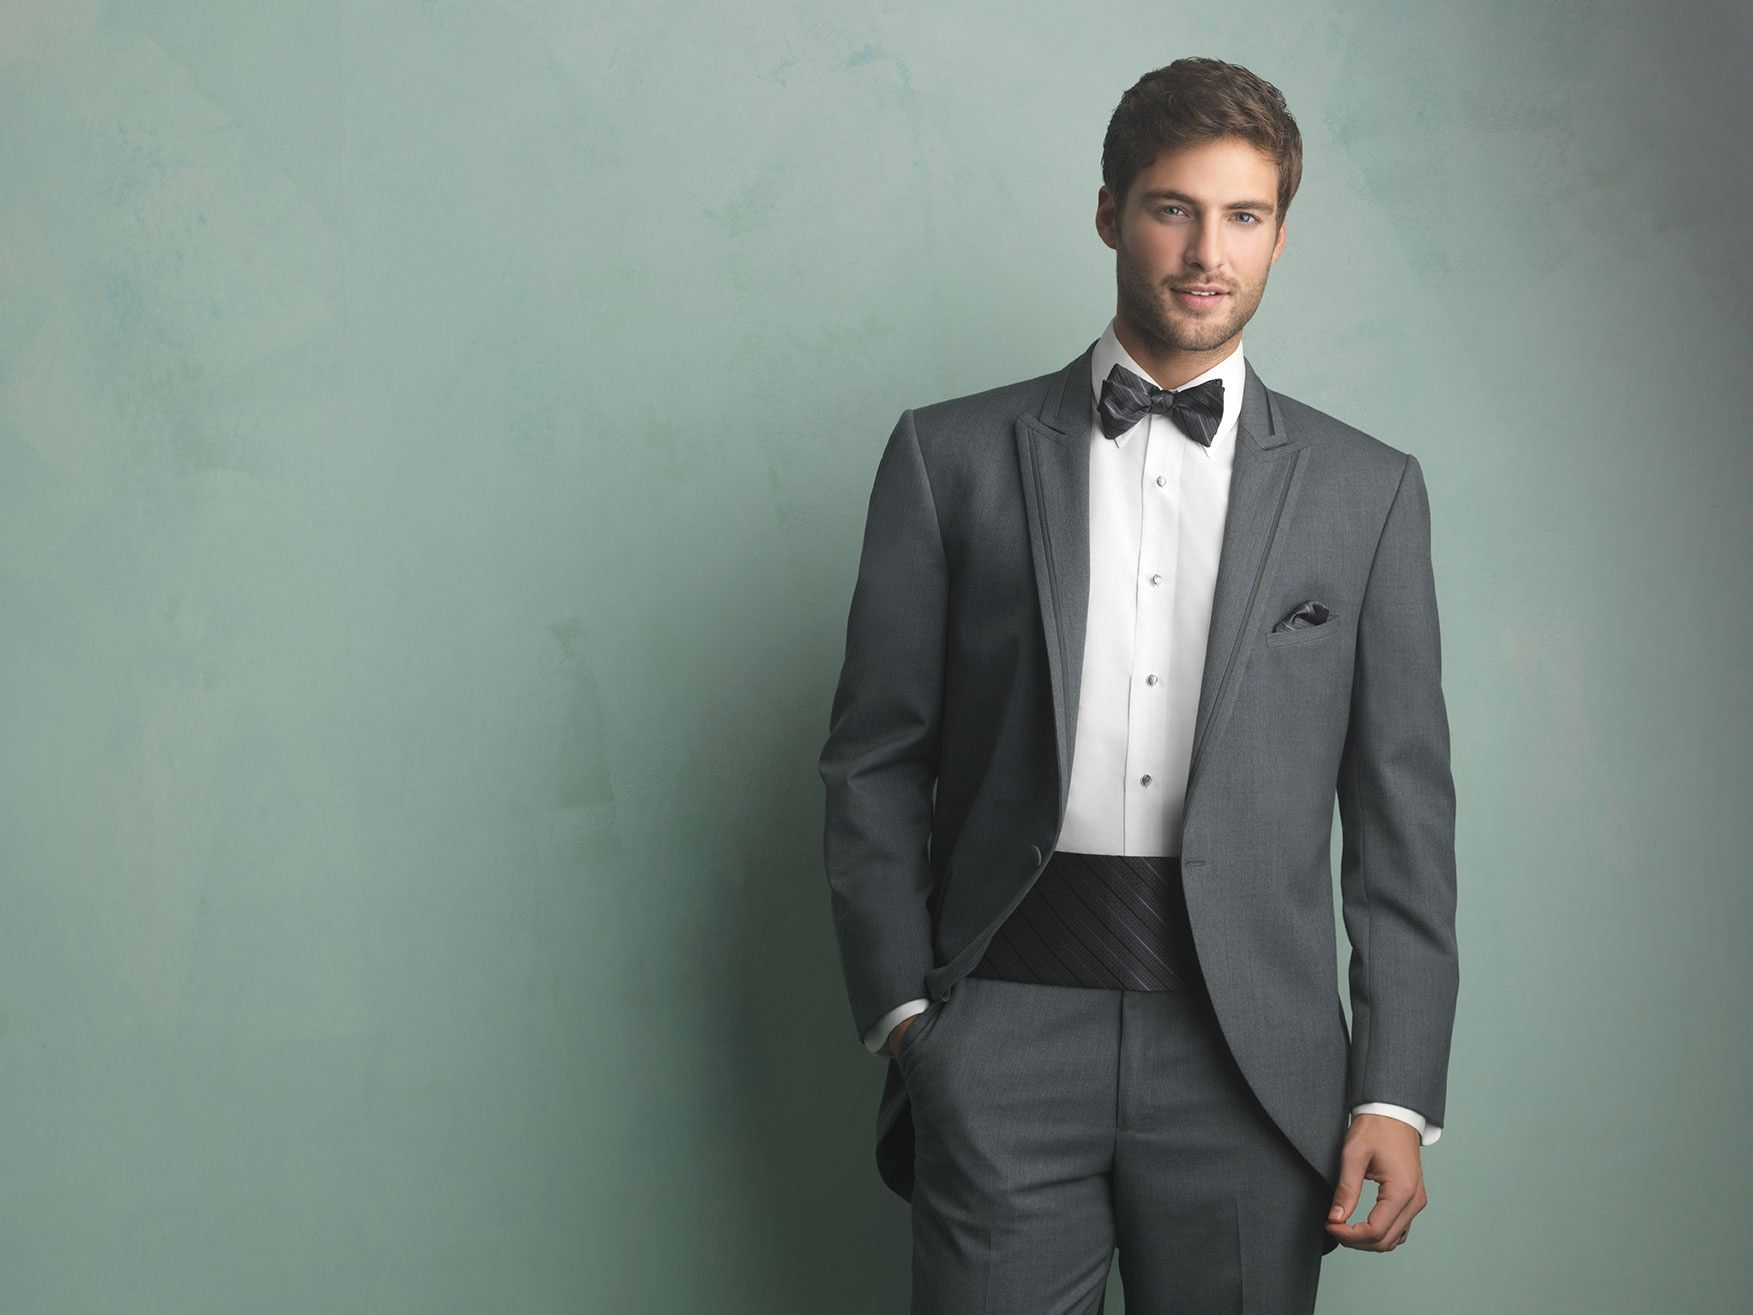 Magnificent Mens Wedding Suit Hire Manchester Festooning - All ...